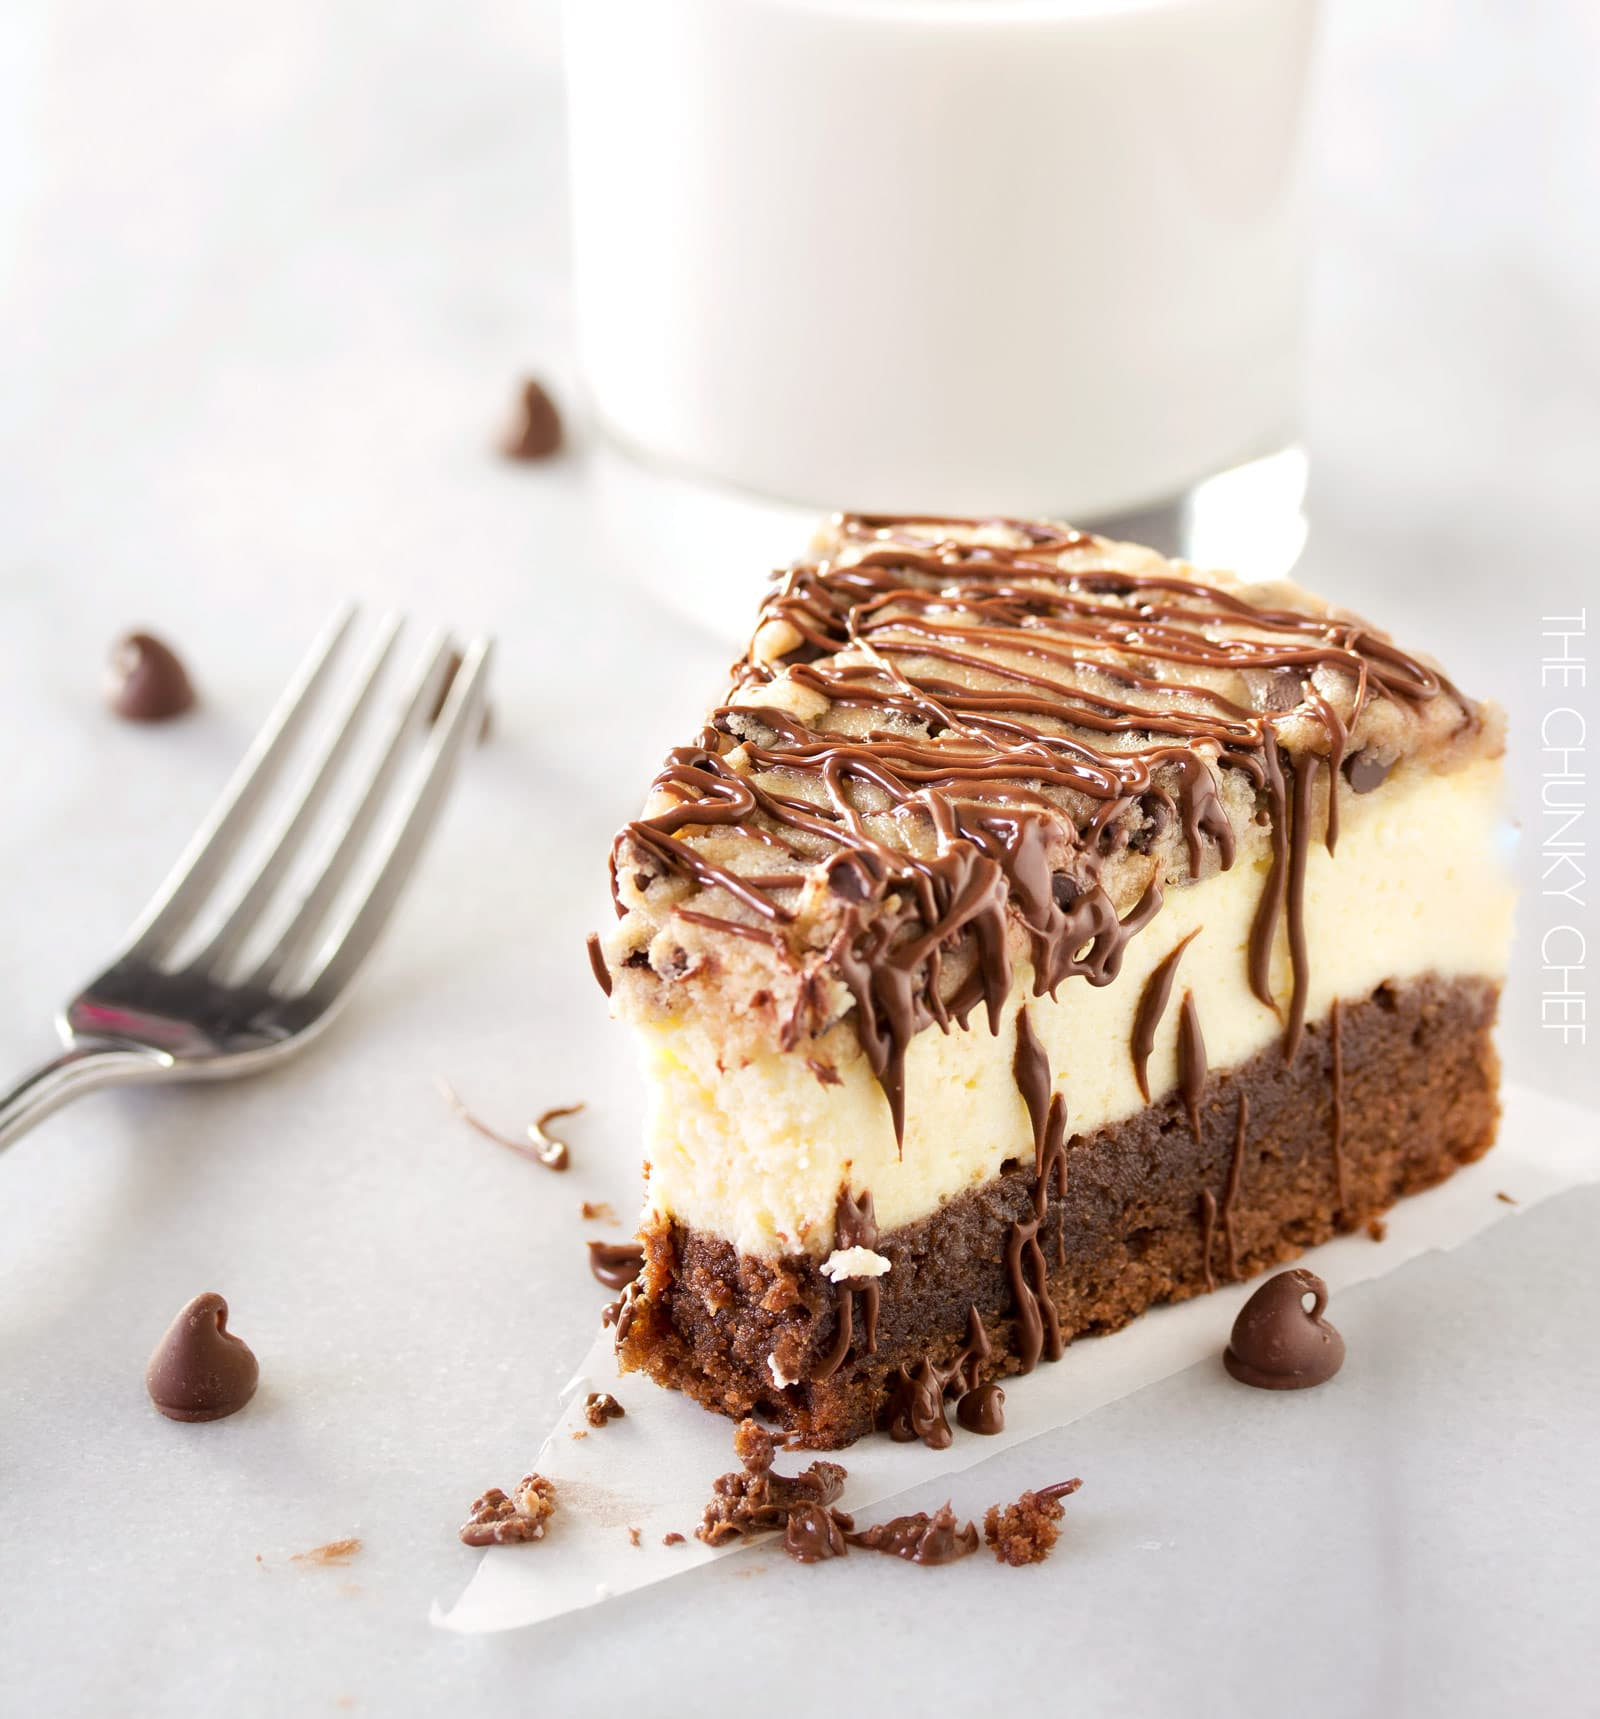 Brownie Bottom Cookie Dough Cheesecake |  This impressive, yet super easy, brownie bottom cookie dough cheesecake looks as fancy as any dessert you've had from a restaurant!  The ULTIMATE cheesecake for the ULTIMATE dessert lover!  |  http://thechunkychef.com